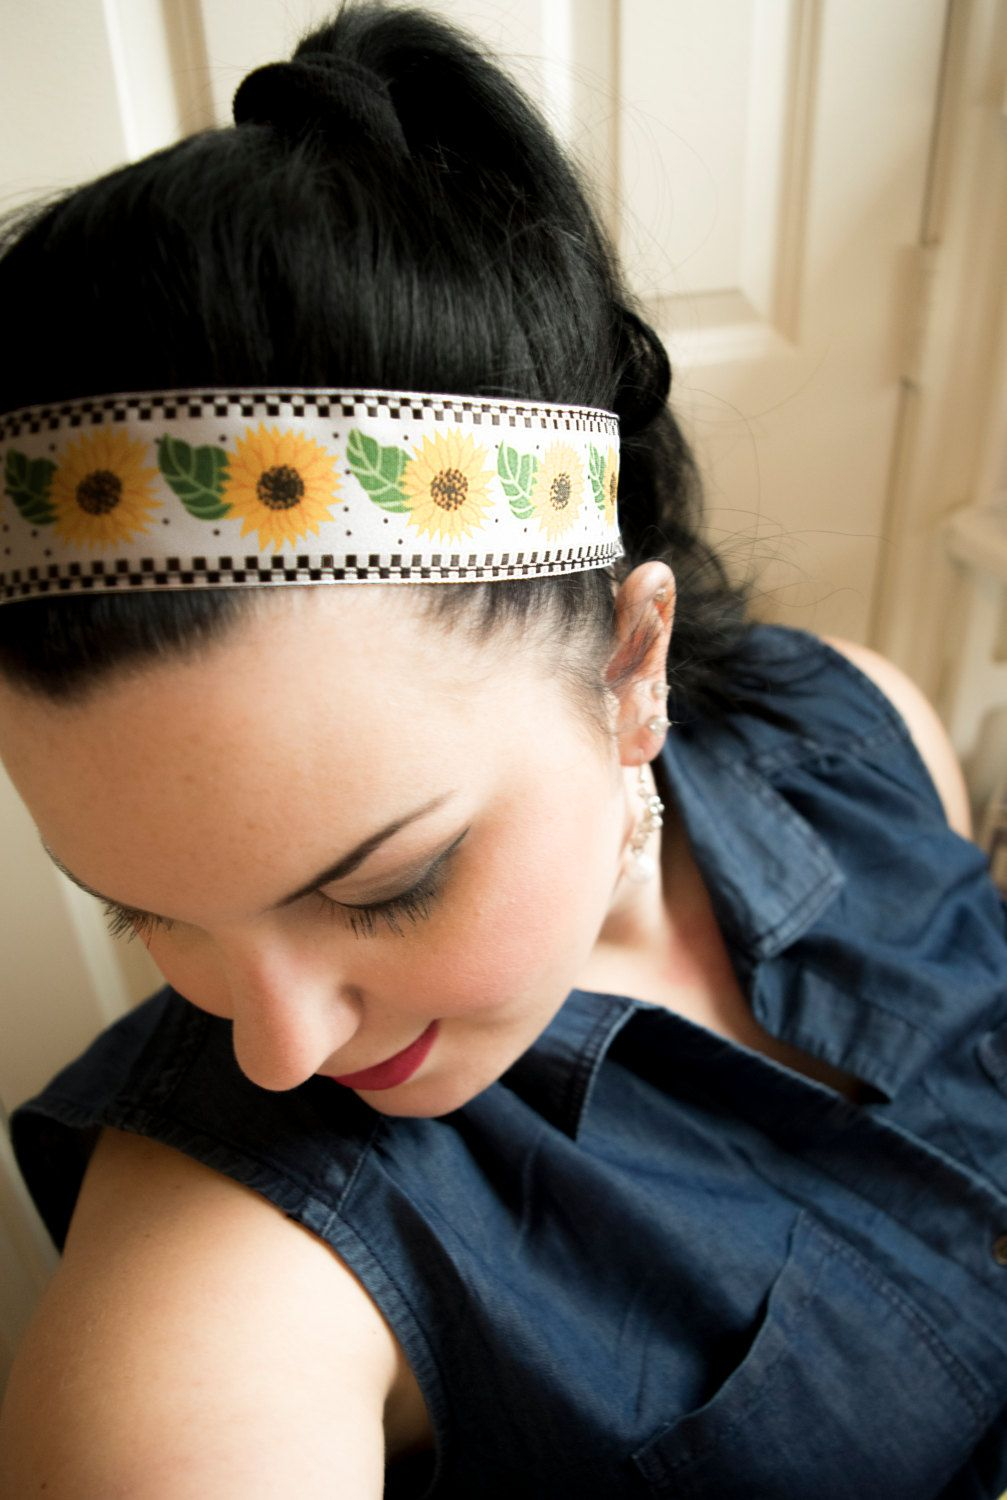 Checkerboard Sunflower- Sunflower print with Checkerboard Border Non-Slip  Headband Hair Accessory by SwankyBands on Etsy  spring  sunflowers  headband   hair ... 7cf90c7ba6f